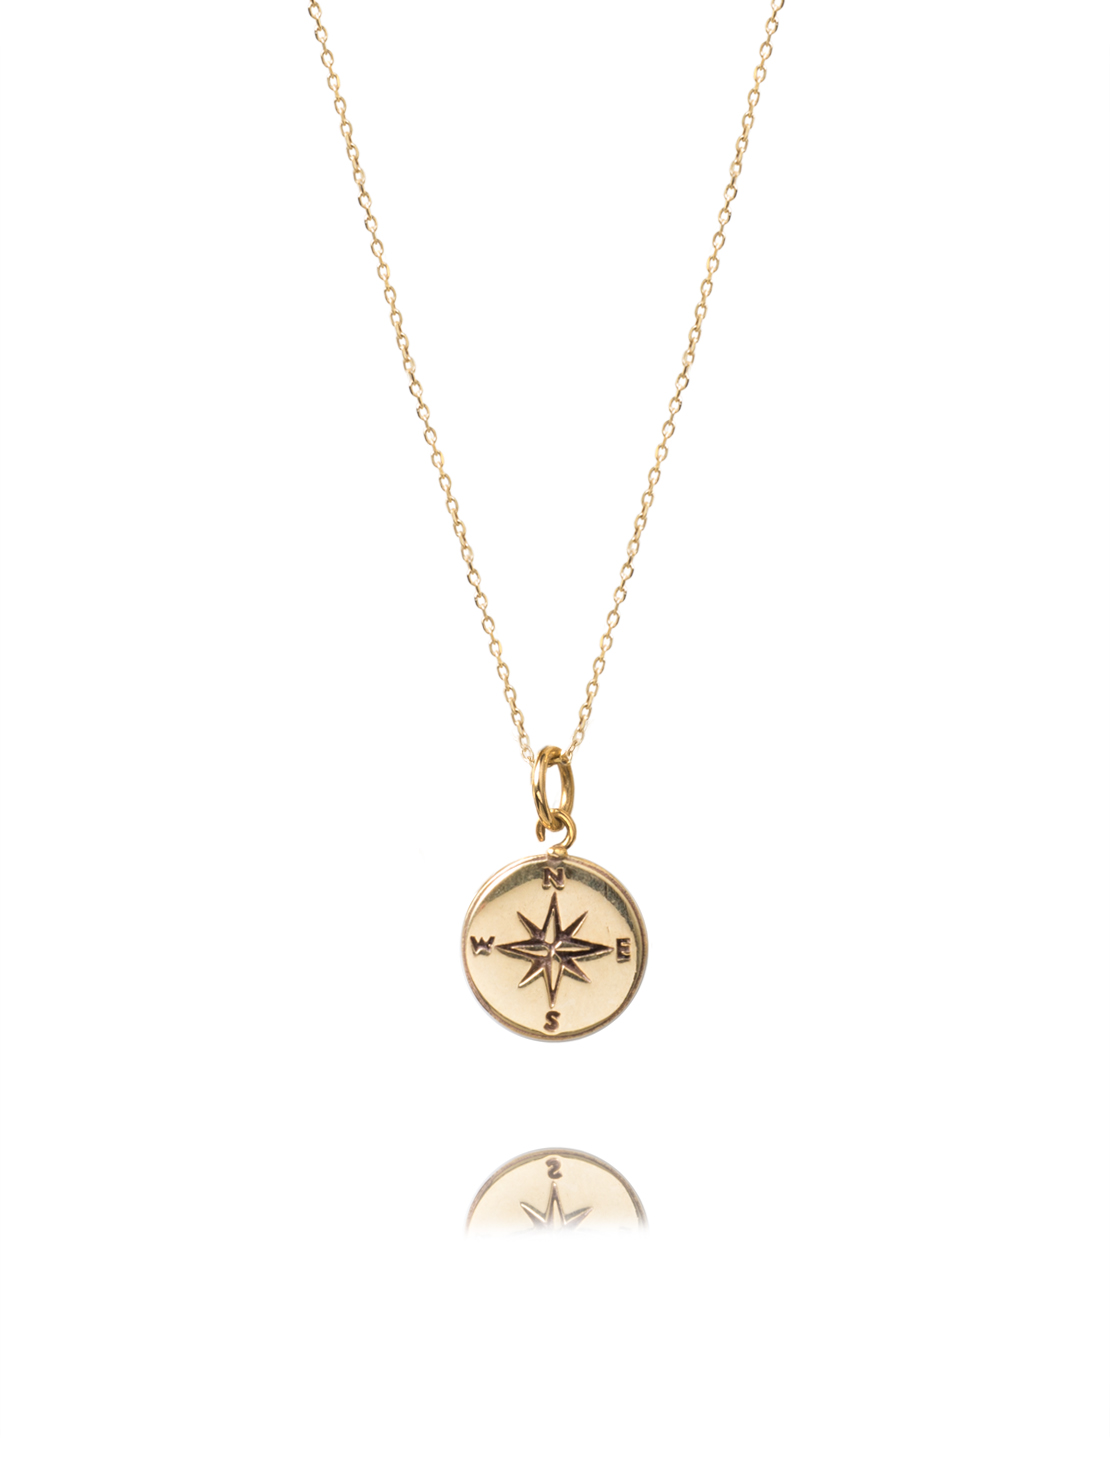 fashion necklace source accessories image engraved compass gifts and root hallmark jewelry